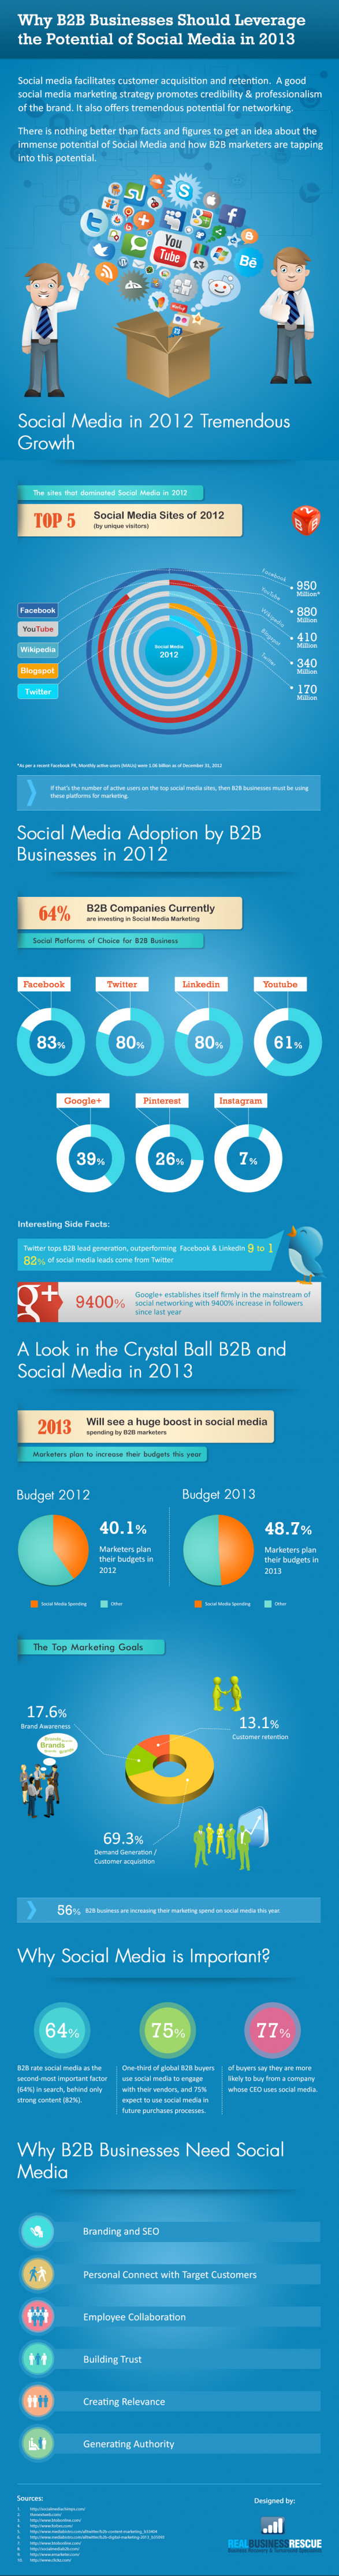 Why B2B Businesses Should Leverage the Potential of Social Media in 2013